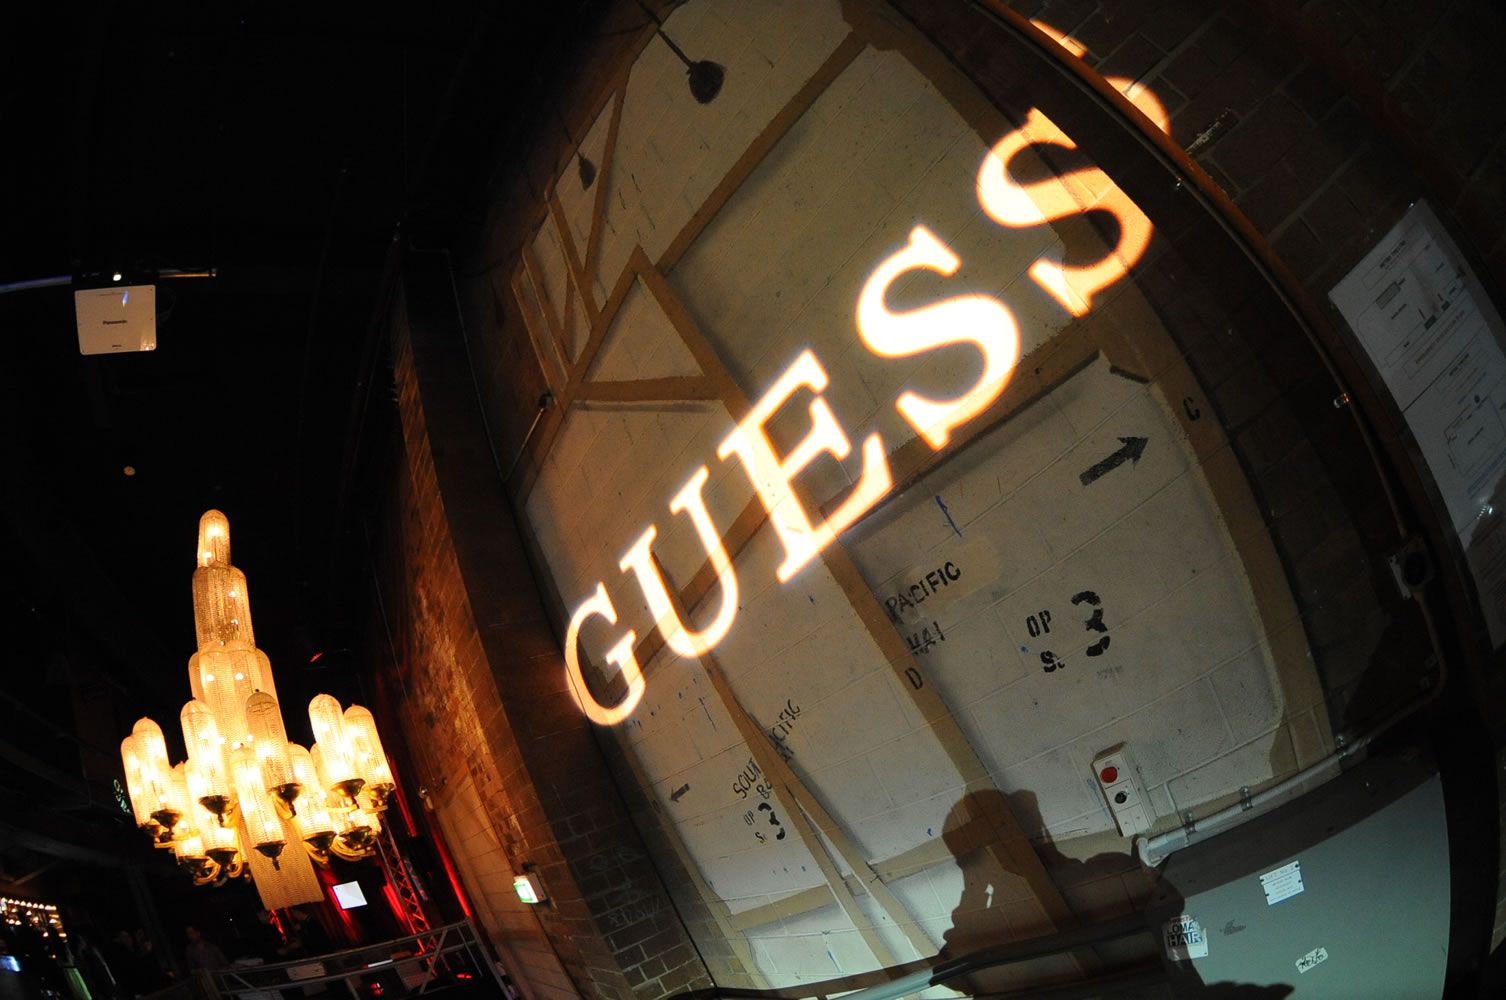 017.guess